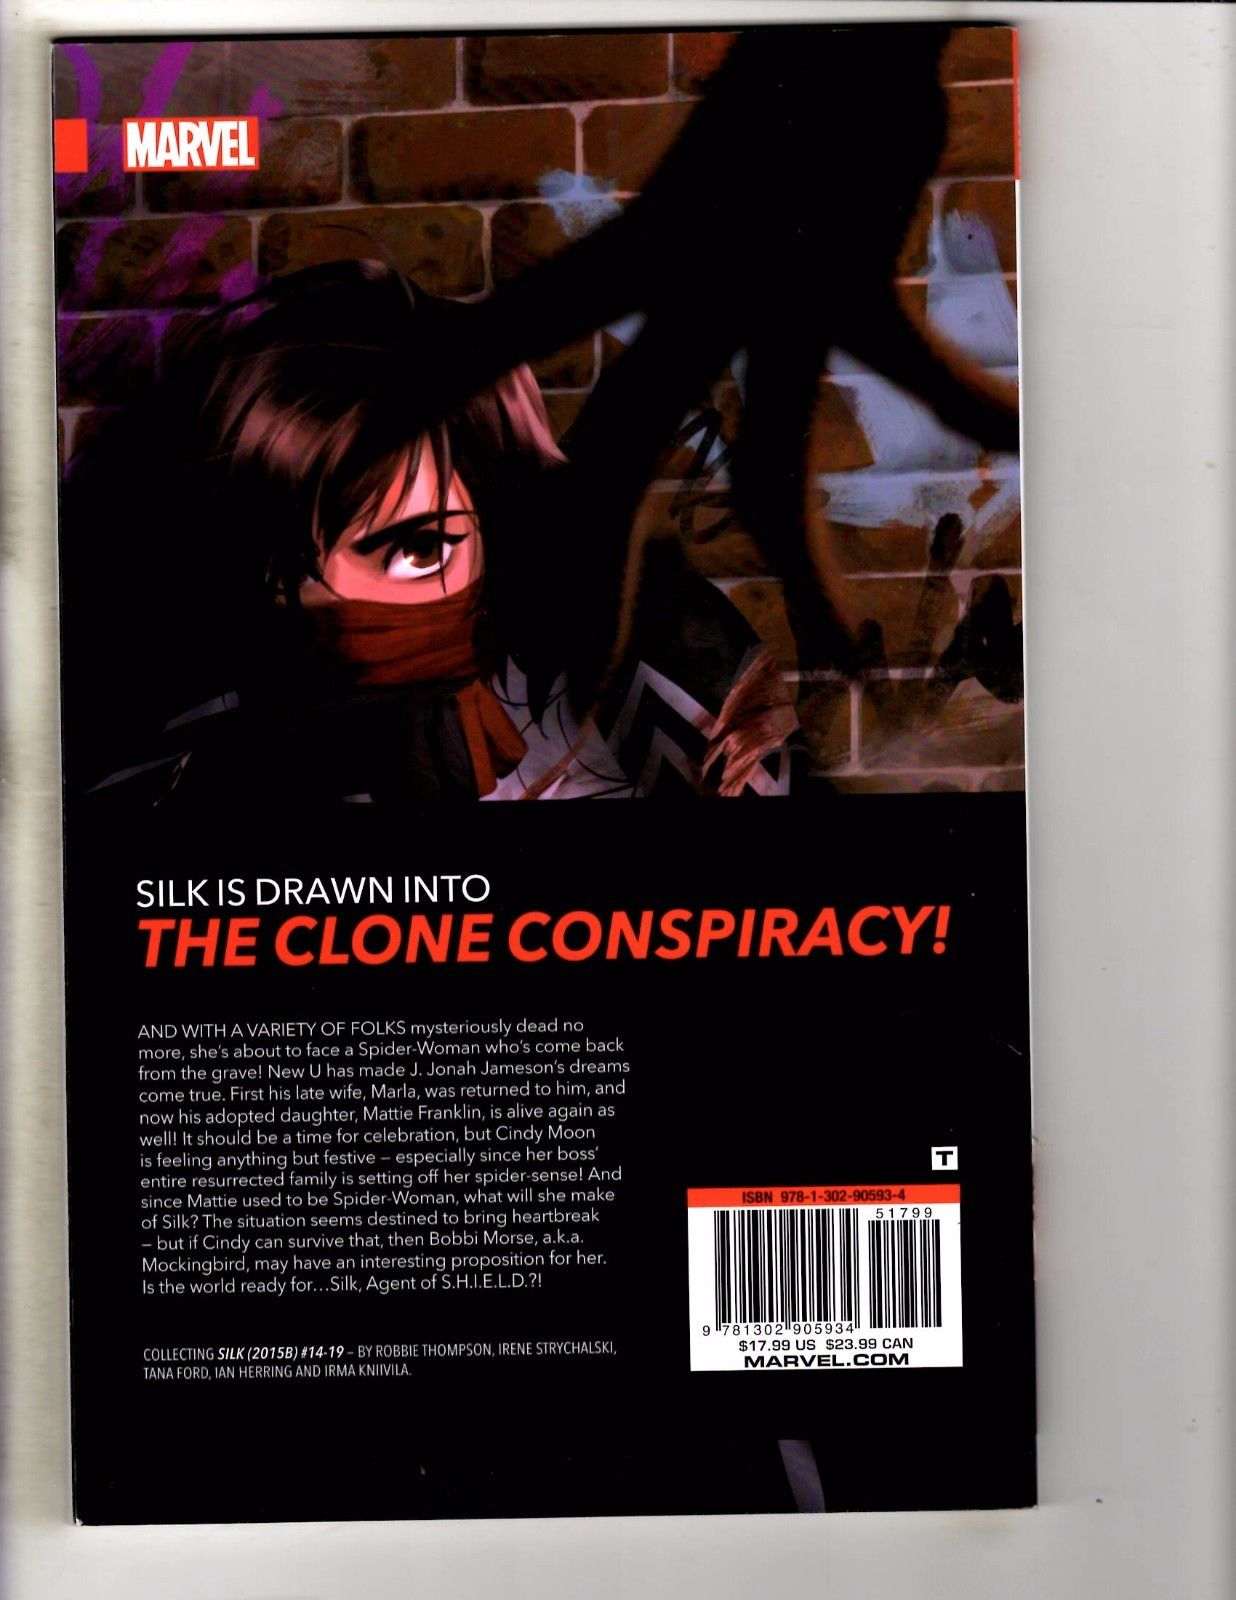 Silk The Clone Conspiracy Vol 3 Marvel Graphic Novel Comic Book